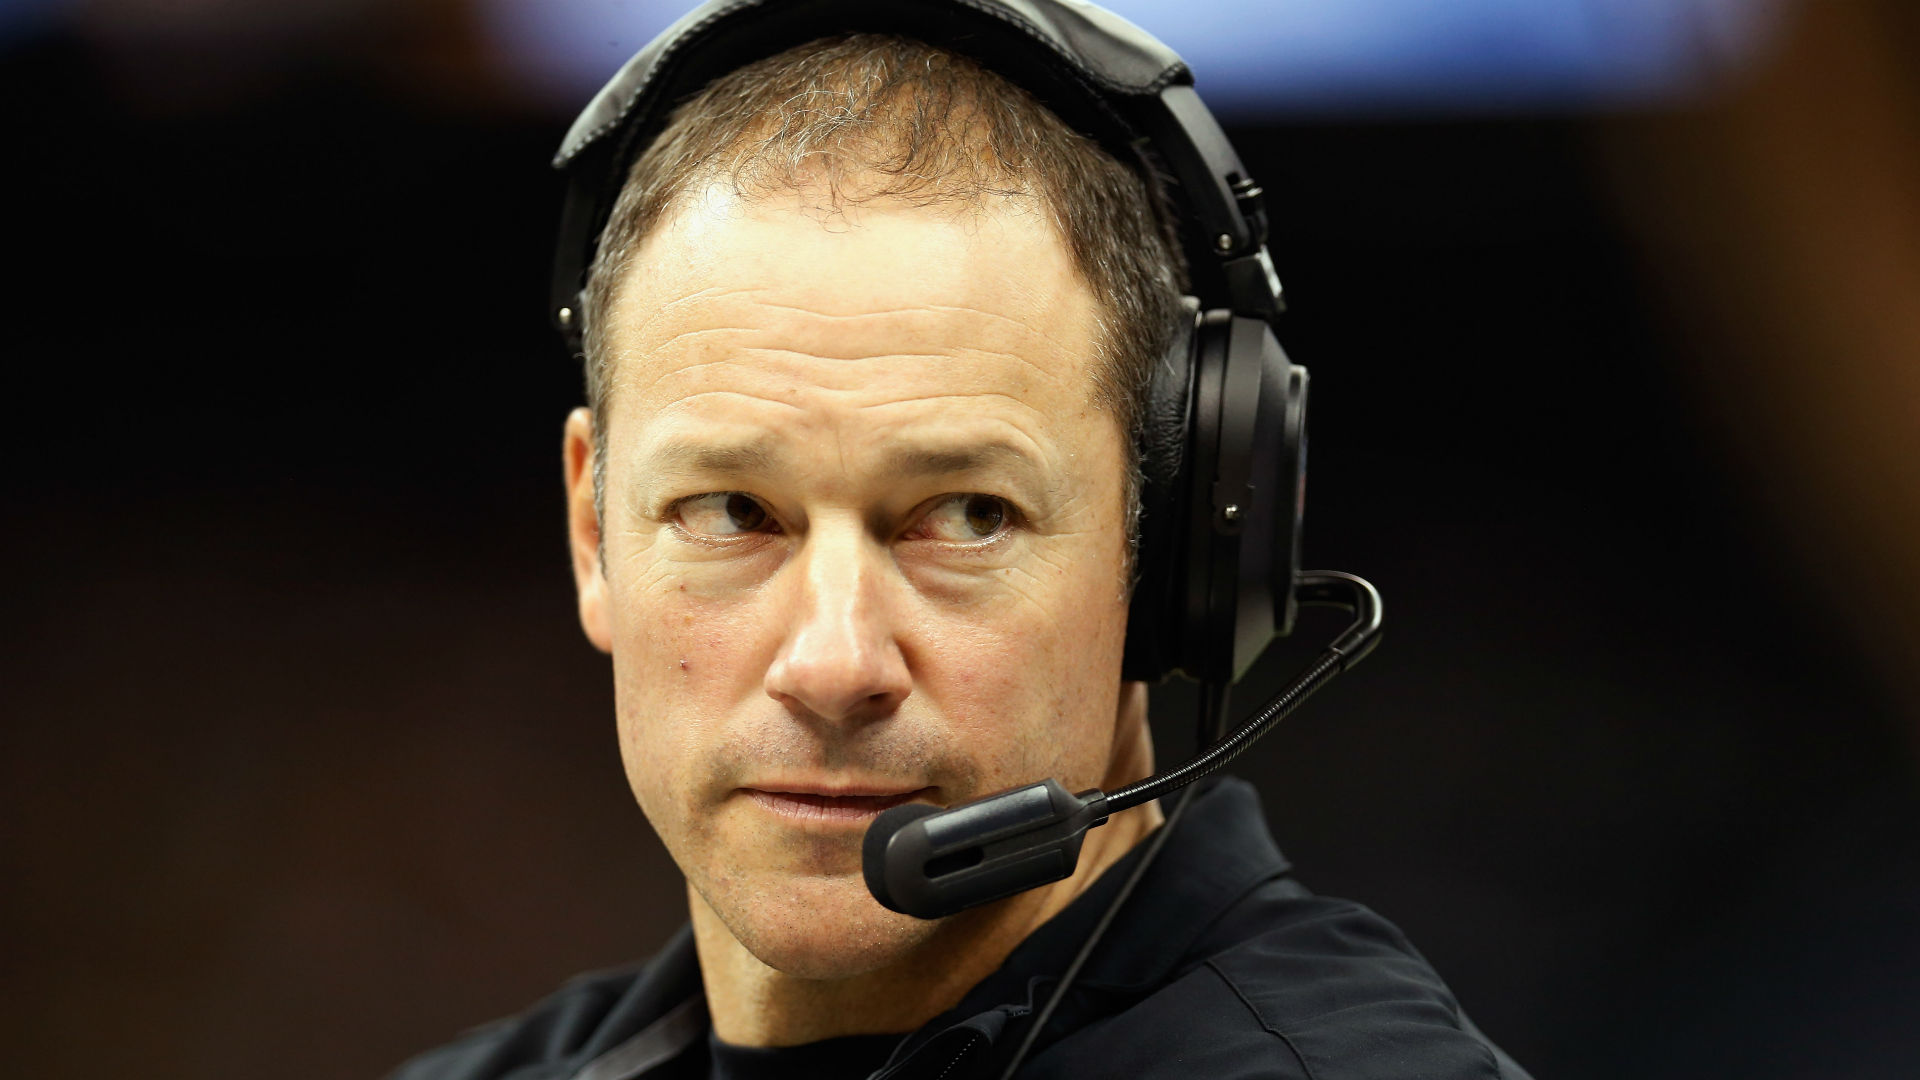 Bills suspend OL coach Aaron Kromer for six games without pay